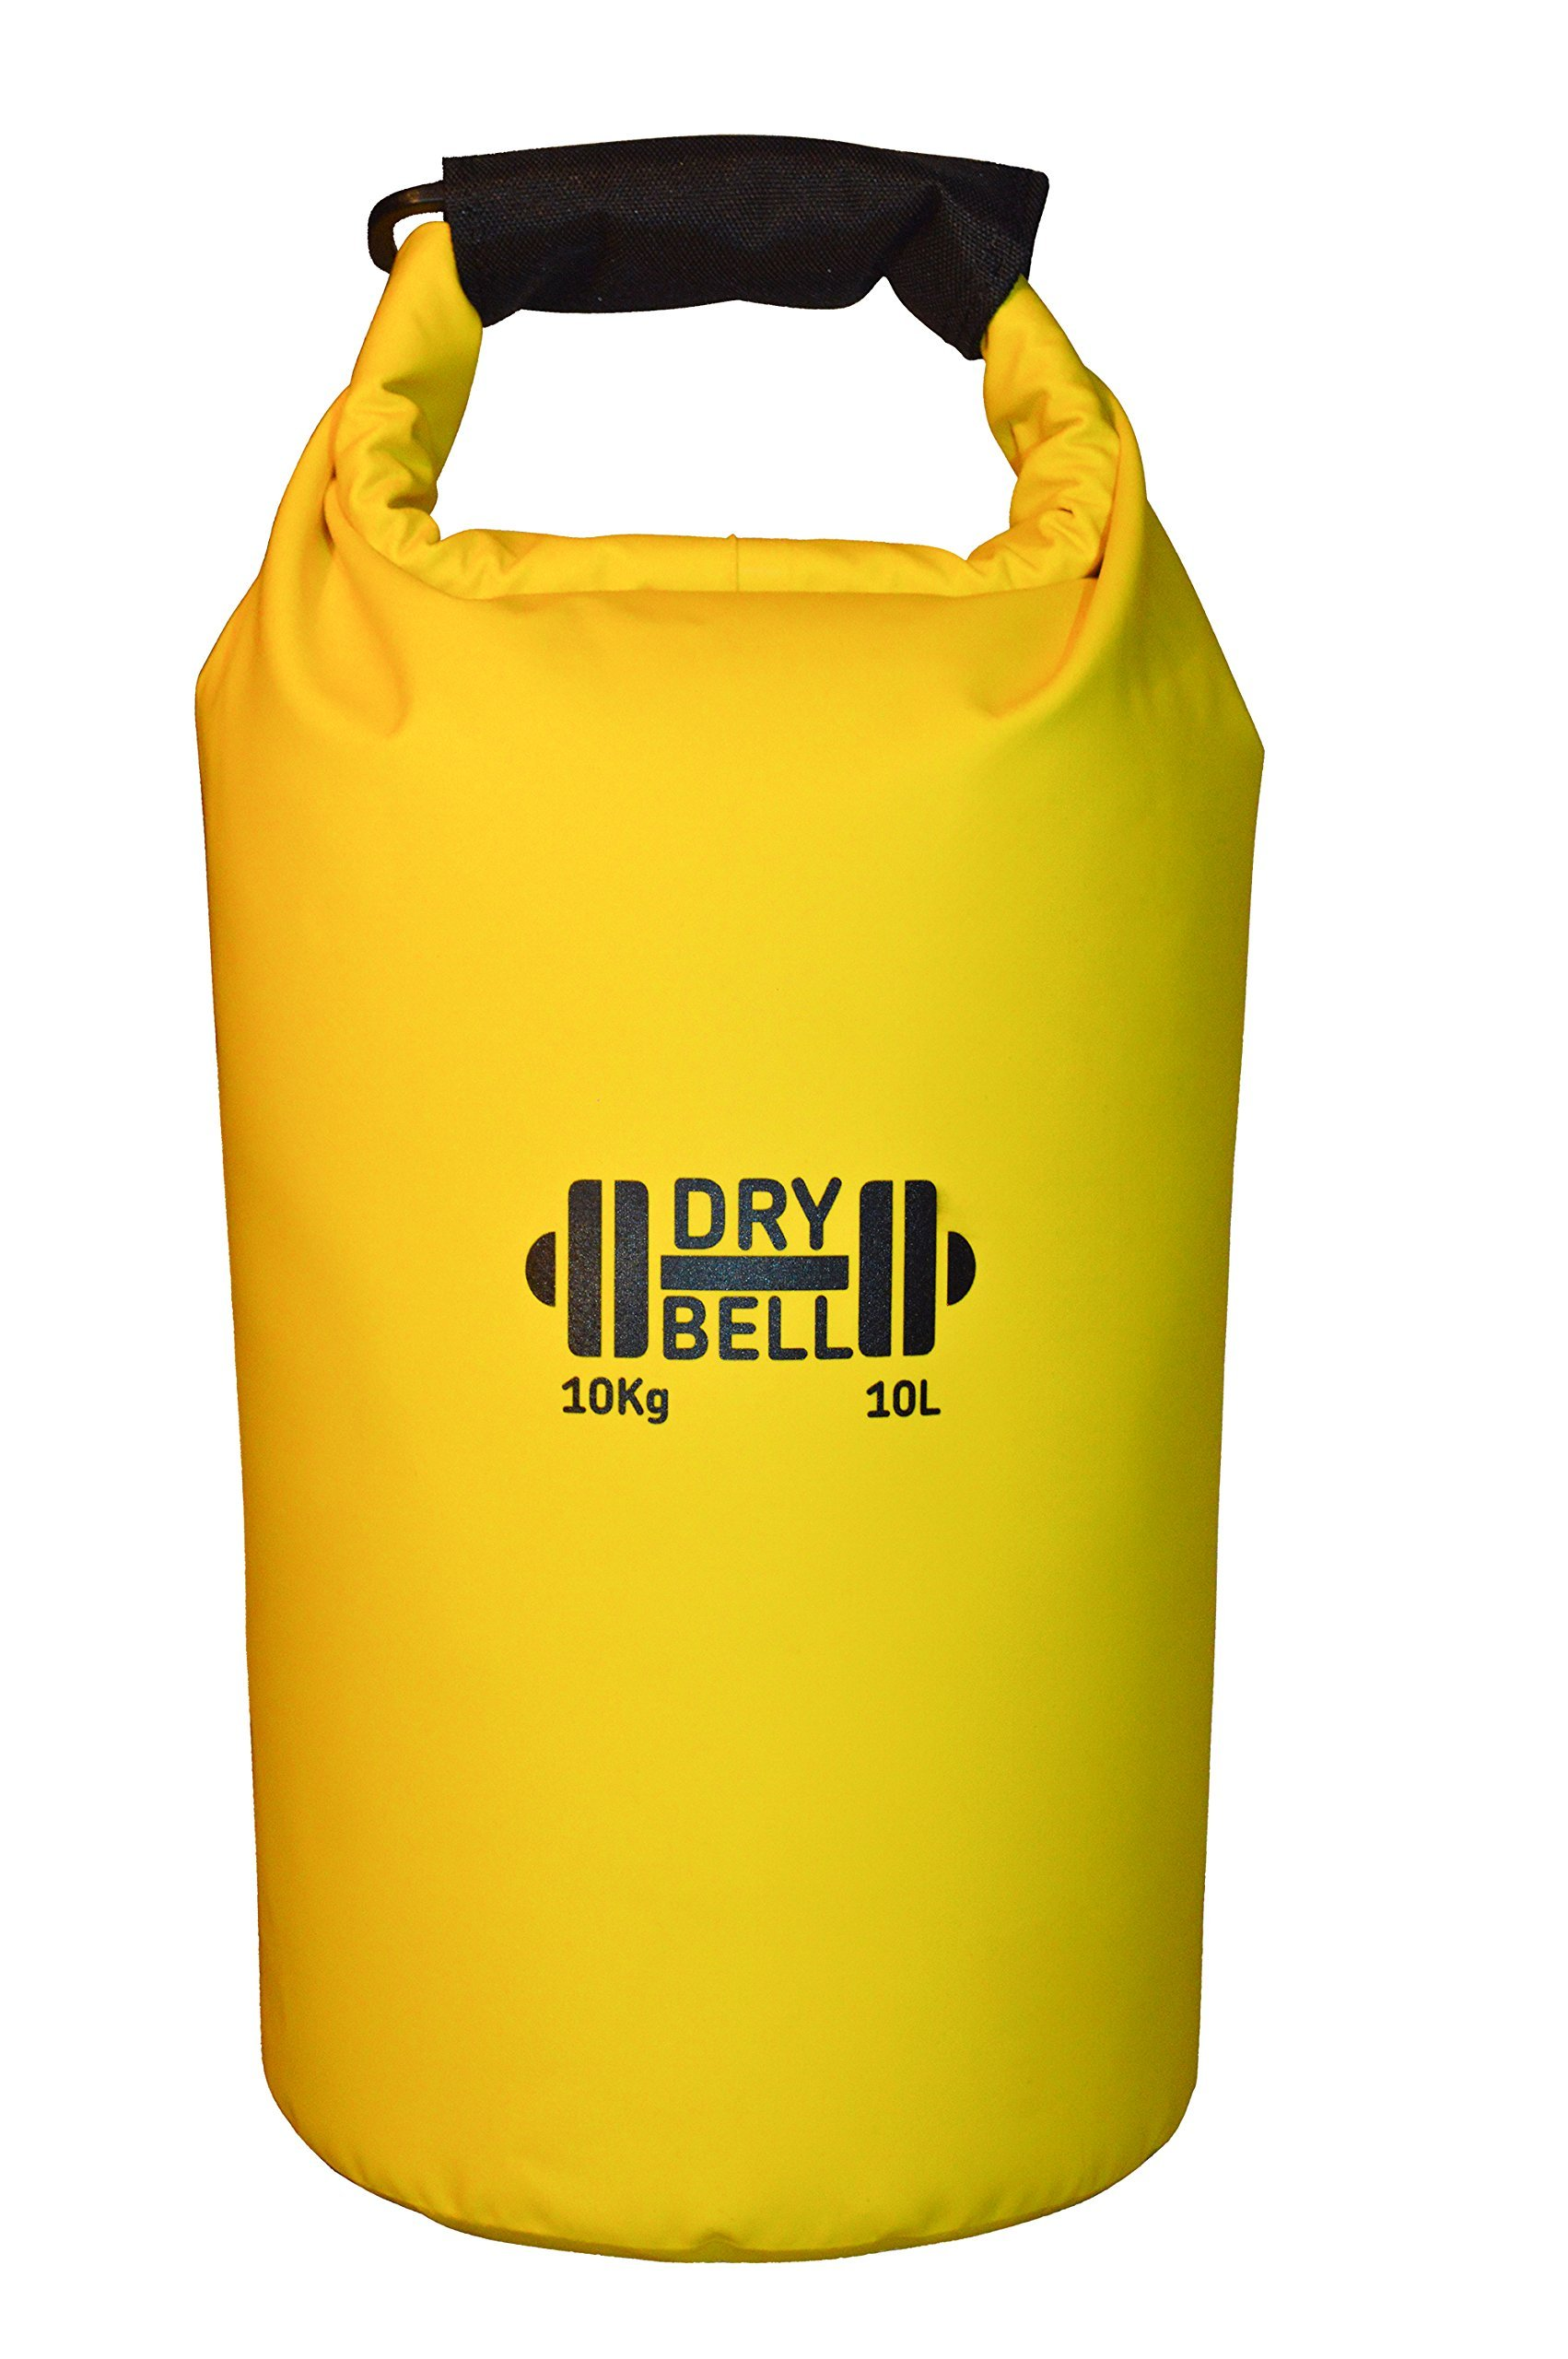 Heavy Duty Dry Bag Dumbbell ''DryBell'' Waterproof Bag - Sand / Water Weight